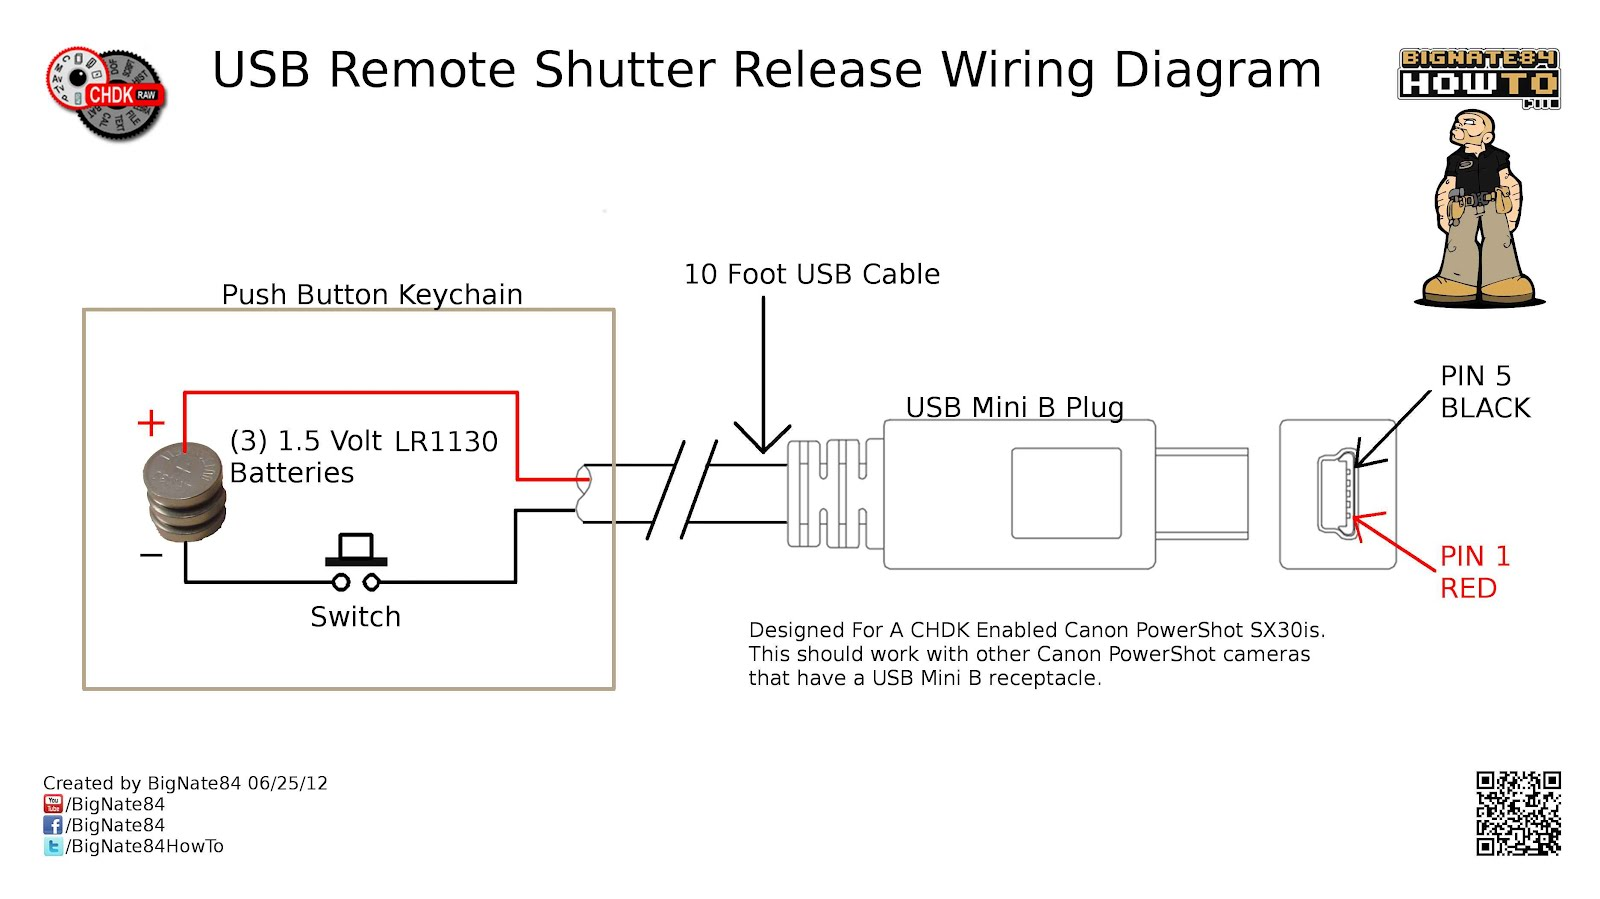 latest?cb=20120809225626 image 0001 usb remote shutter wiring diagram 1 jpeg chdk wiki usb plug wiring diagram at webbmarketing.co